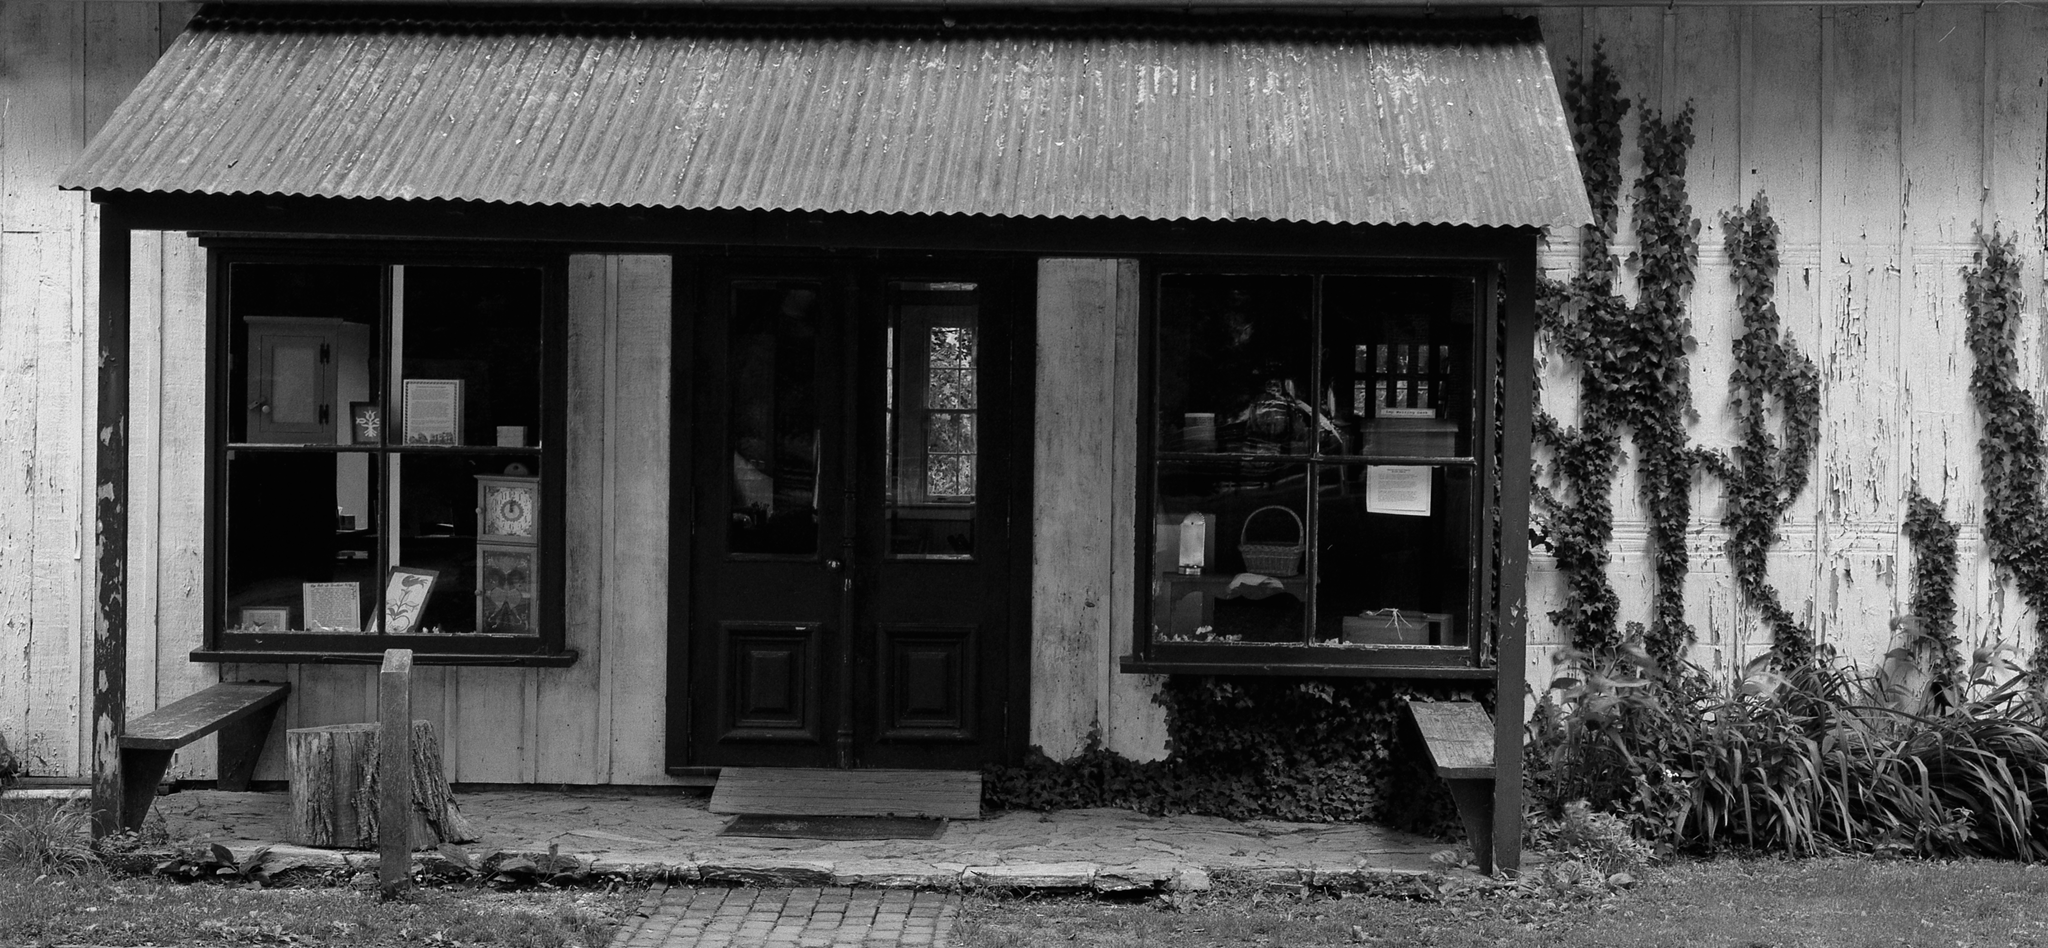 4x5_for_365_project_0180_Landis_Valley_storefront.png